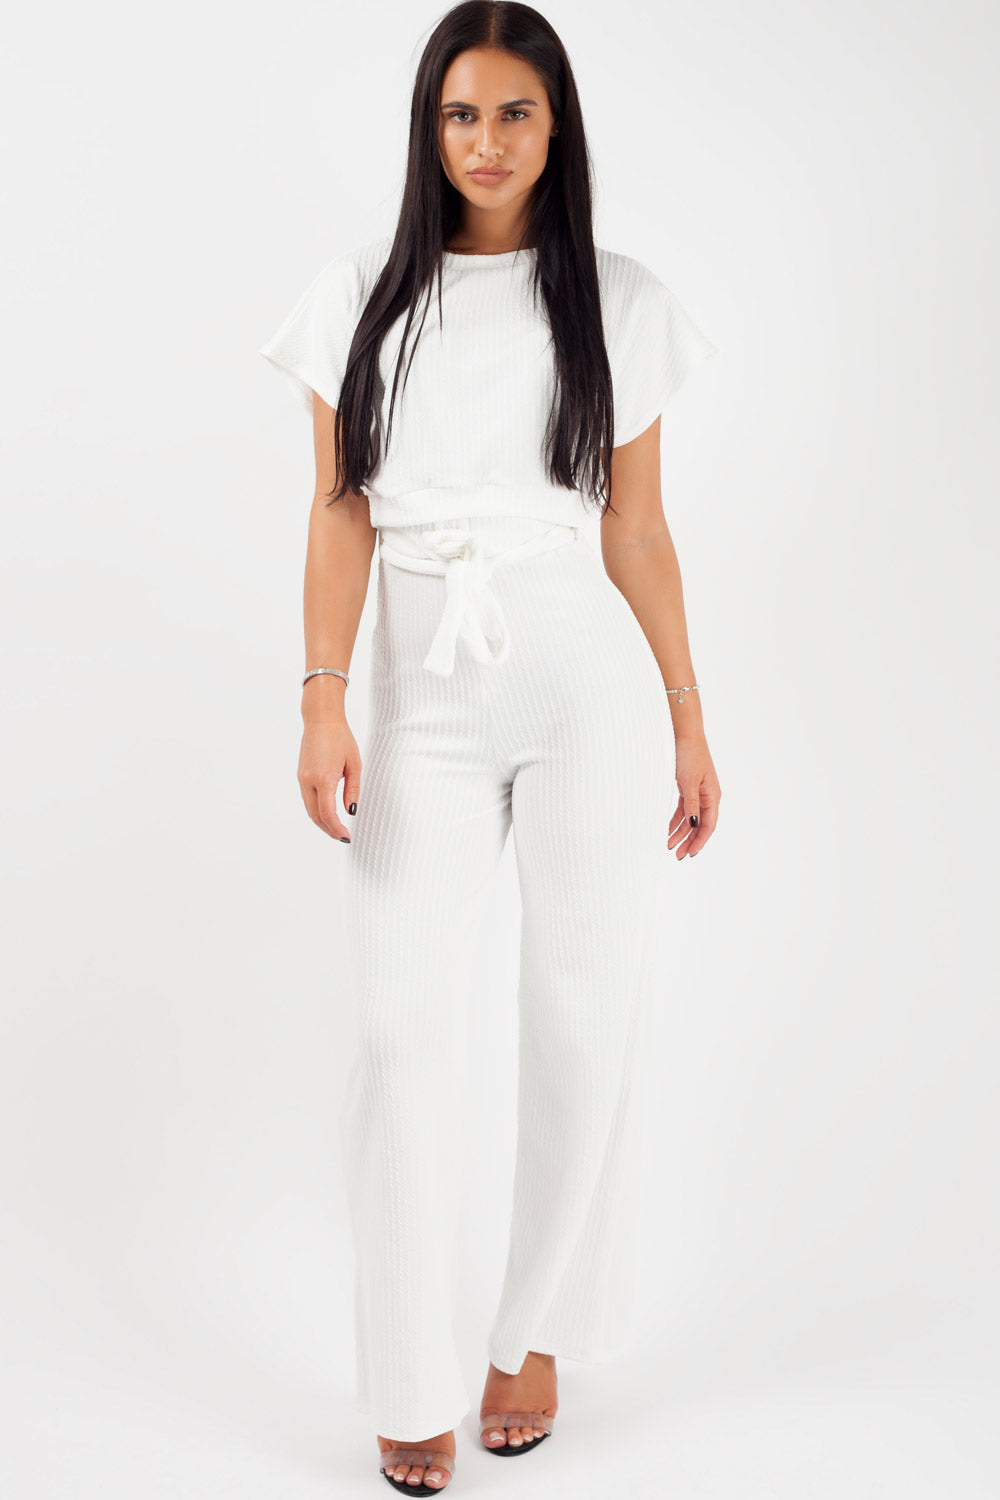 wide leg trousers and crop top loungewear co ord set